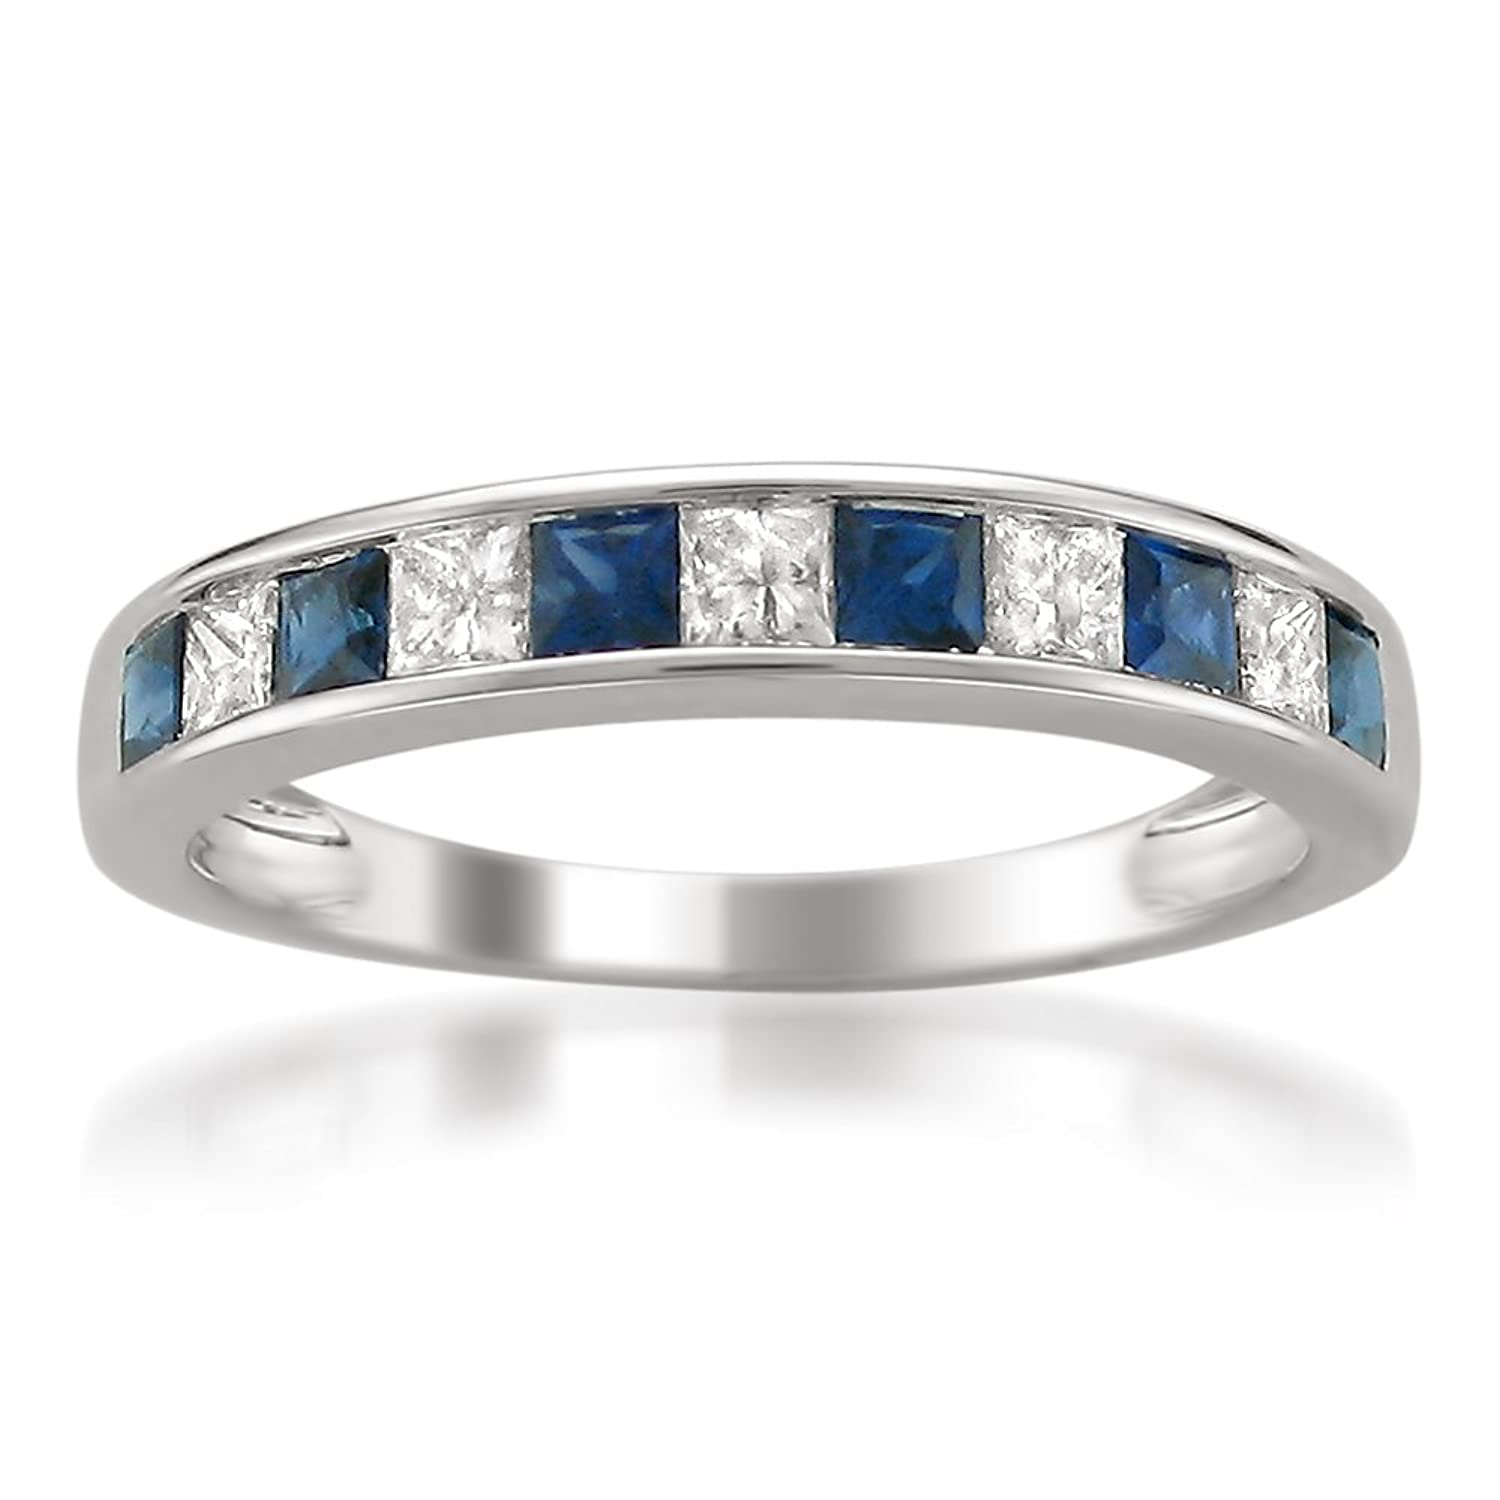 band eternity ring w wedding anniversary walmart sapphire semi created miabella ip silver carat white sterling com g t